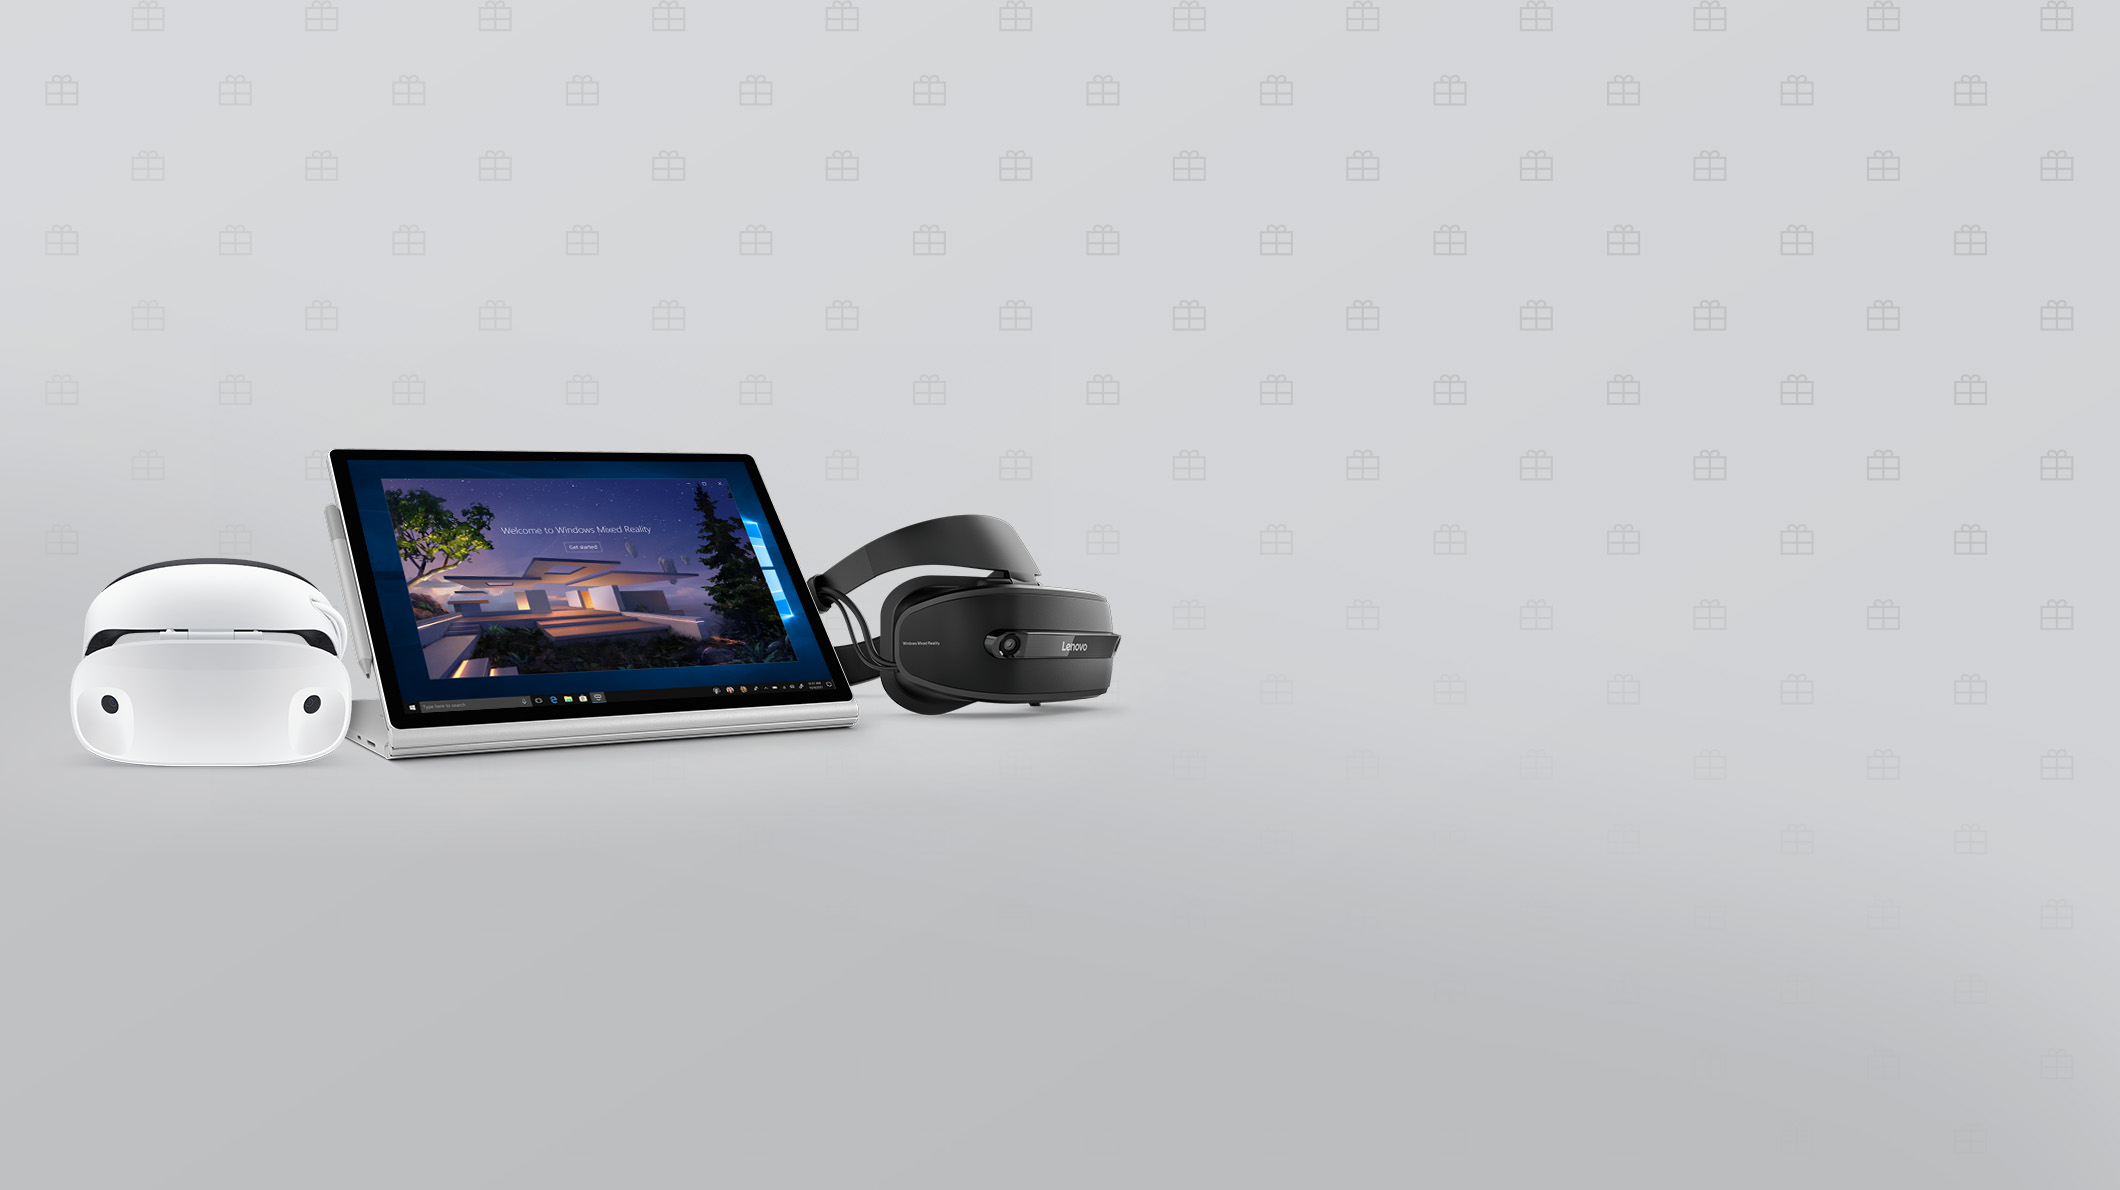 Surface Book 2 with Windows Mixed reality headsets